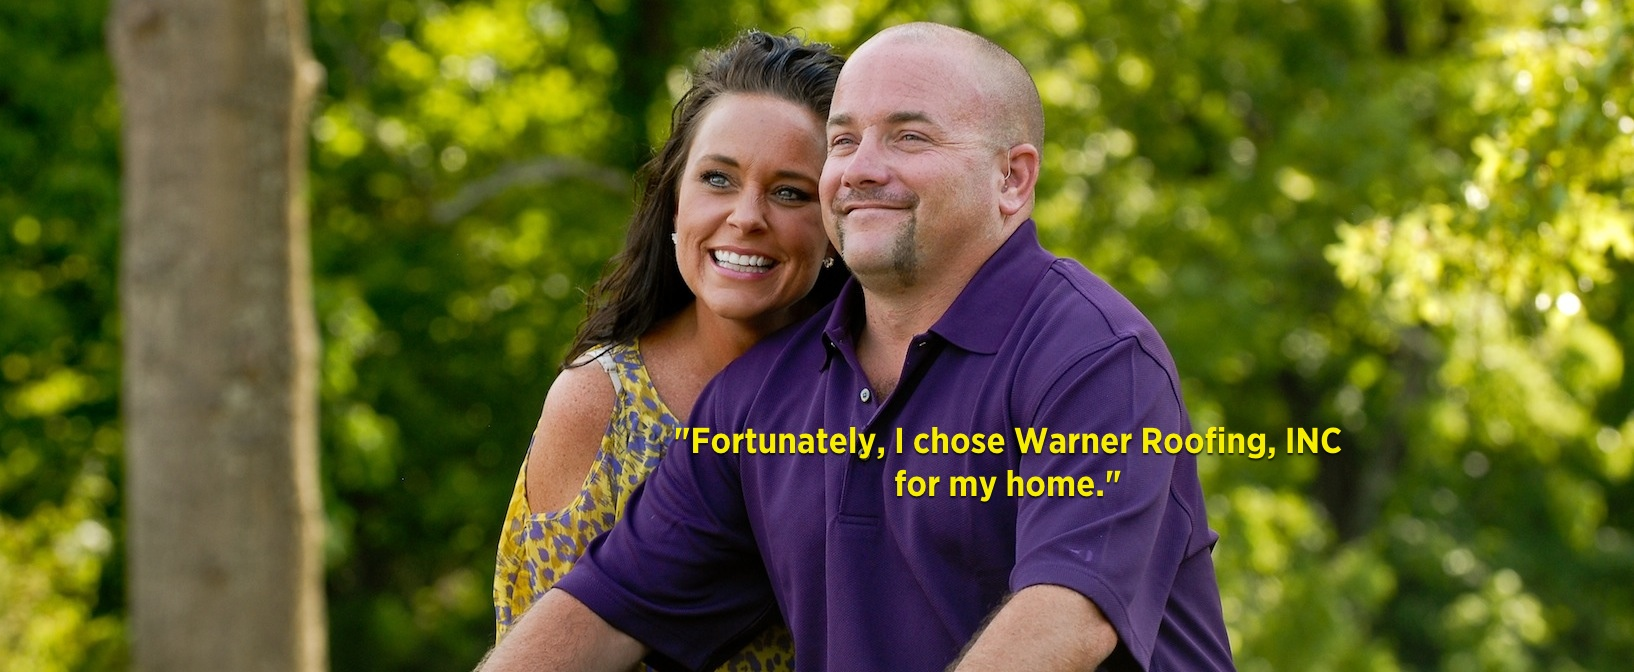 """Fortunately, I chose Warner Roofing, INC for my home."""